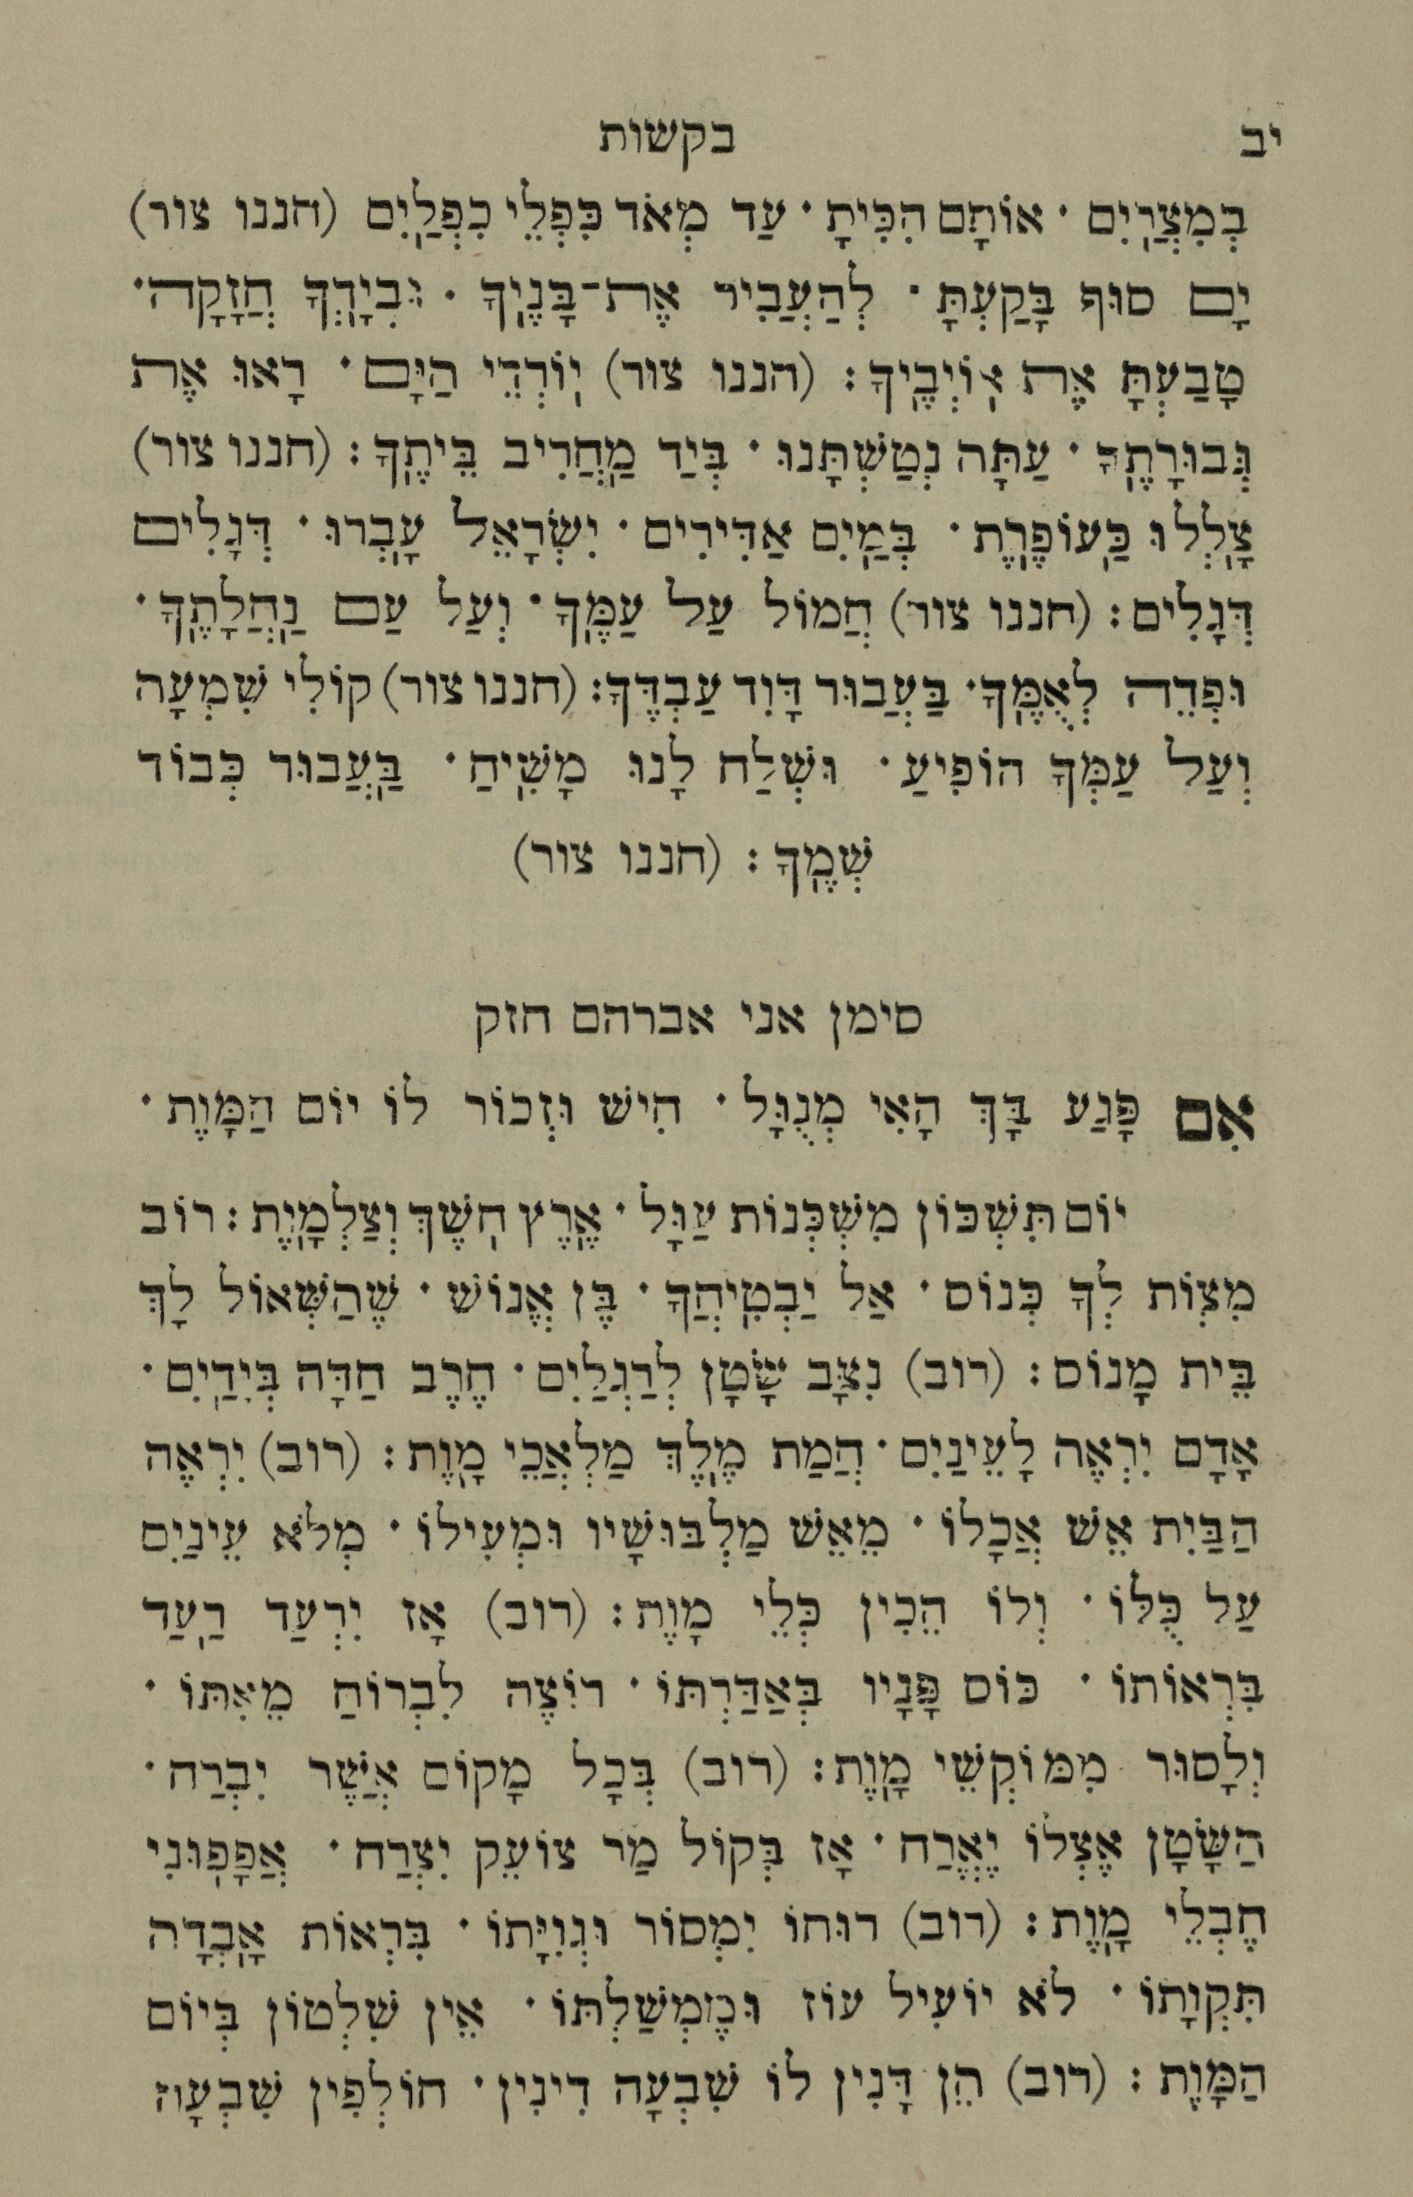 File:The National Library of Israel - The Daily Prayers